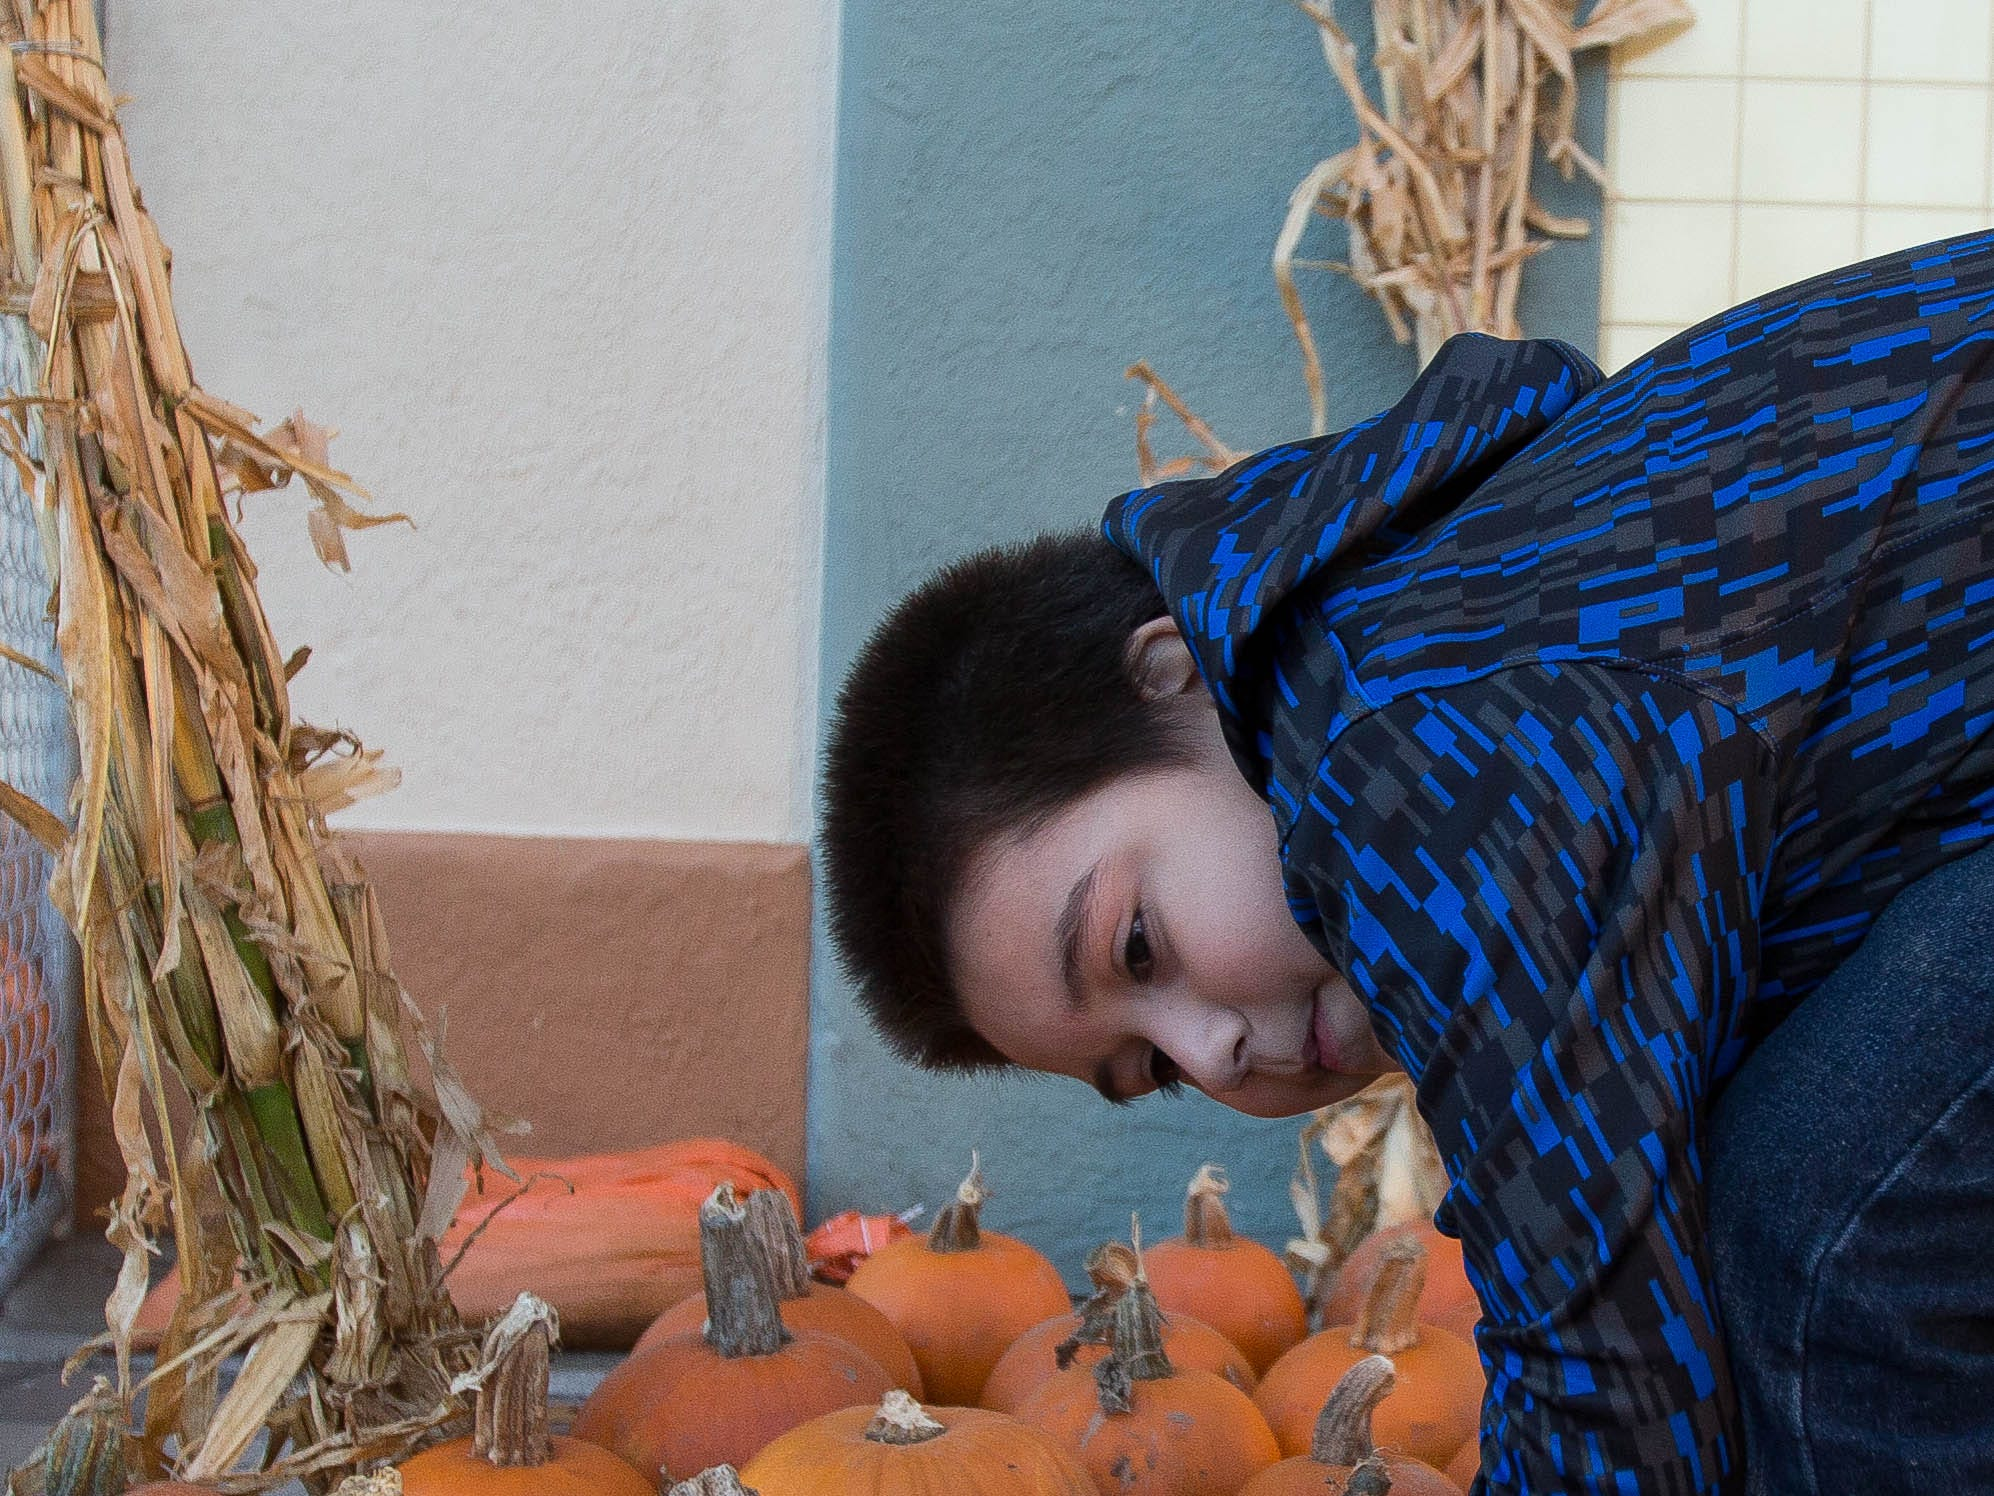 RJ Garcia, 6, looking over pumpkins in the pumpkin patch outside the Rio Grande Theater, part of the Farmers Market Fall Fest held at the Plaza de Las Cruces, Wednesday October 24, 2018.